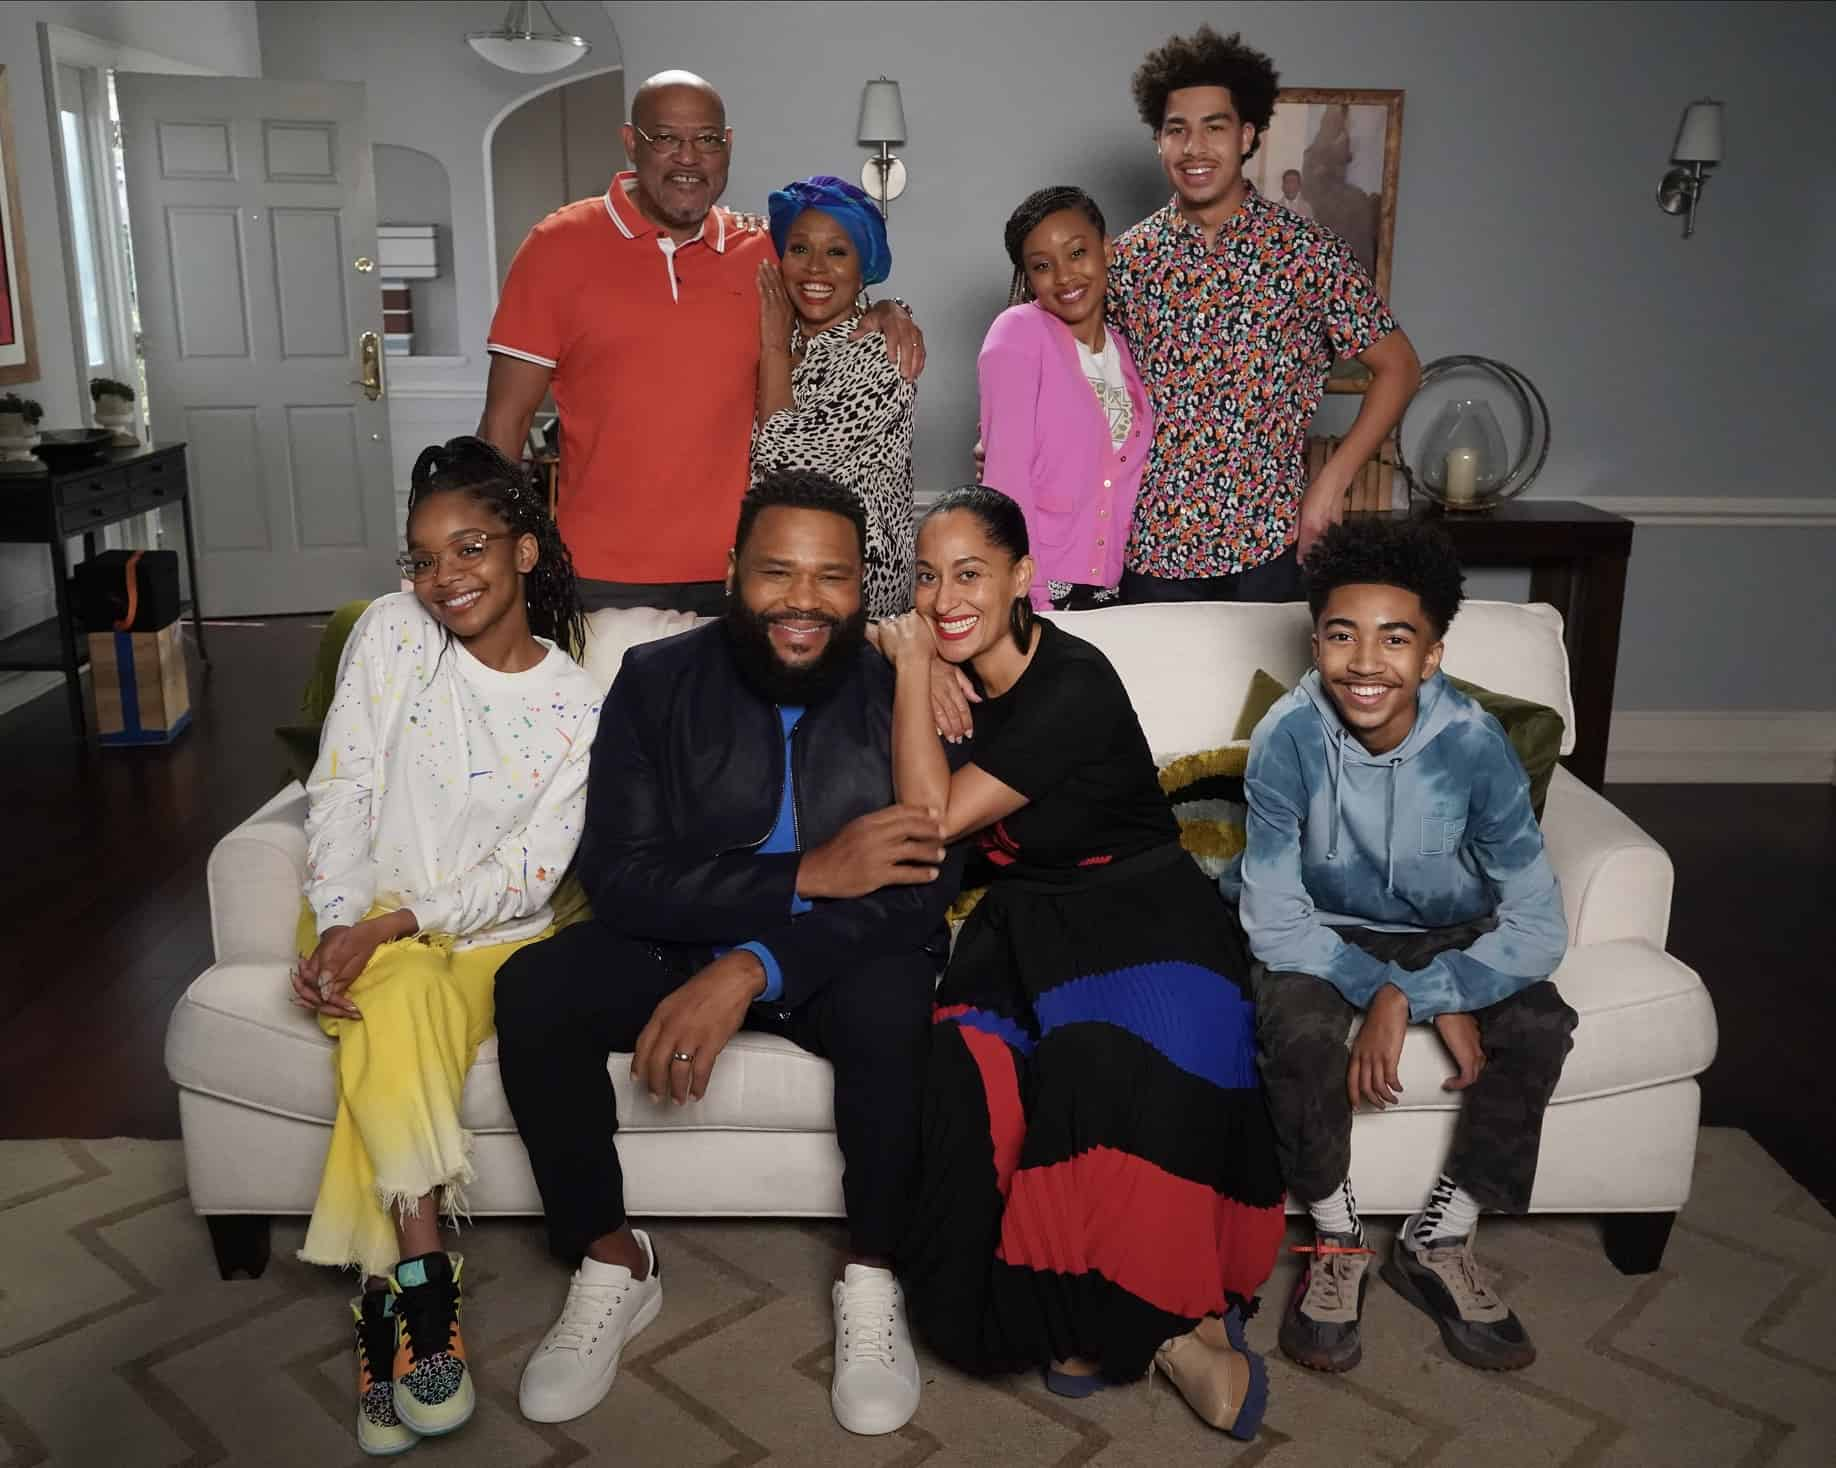 """BLACK-ISH Season 7 Episode 21 - """"Urban Legend"""" – Dre feels pigeonholed to the urban marketing team at Stevens & Lido and realizes he needs to make some big career changes. Boyz II Men stop by the office to help out the team with a SoFi campaign pitch.  Meanwhile, Junior has to deal with the twins who are overstaying their welcome at his and Olivia's apartment on the season finale of """"black-ish,"""" TUESDAY, MAY 18 (9:00-9:30 p.m. EDT), on ABC. (ABC/Richard Cartwright) SITTING: MARSAI MARTIN, ANTHONY ANDERSON, TRACEE ELLIS ROSS, MILES BROWN, STANDING: LAURENCE FISHBURNE, JENIFER LEWIS, KATLYN NICHOL, MARCUS SCRIBNER"""